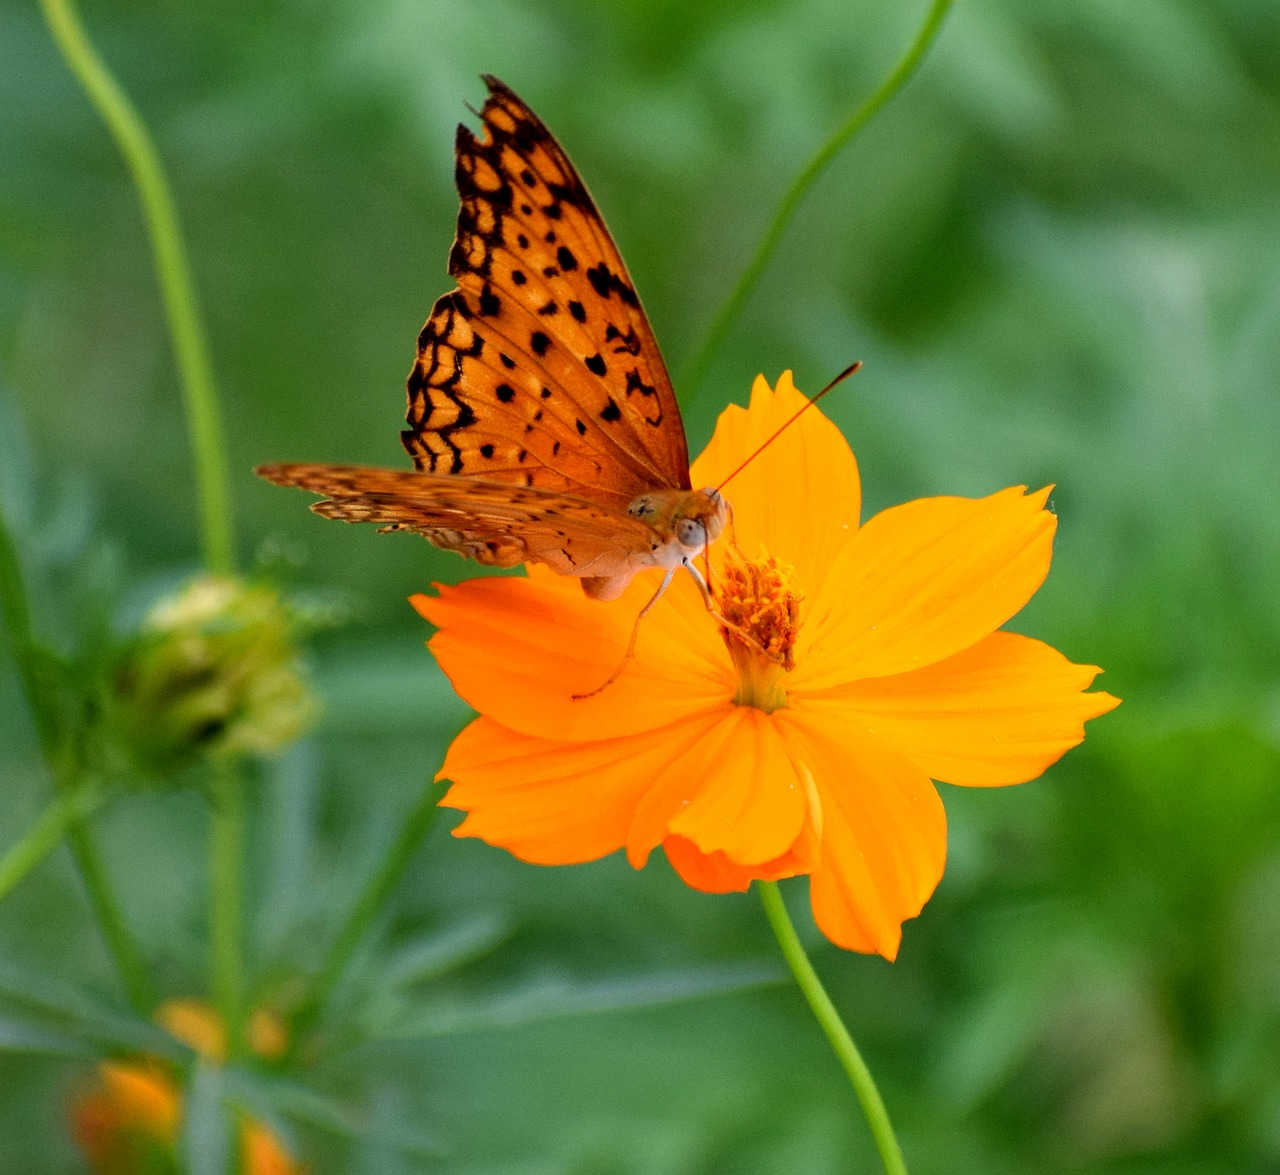 FREE butterfly Stock Photos from PikWizard